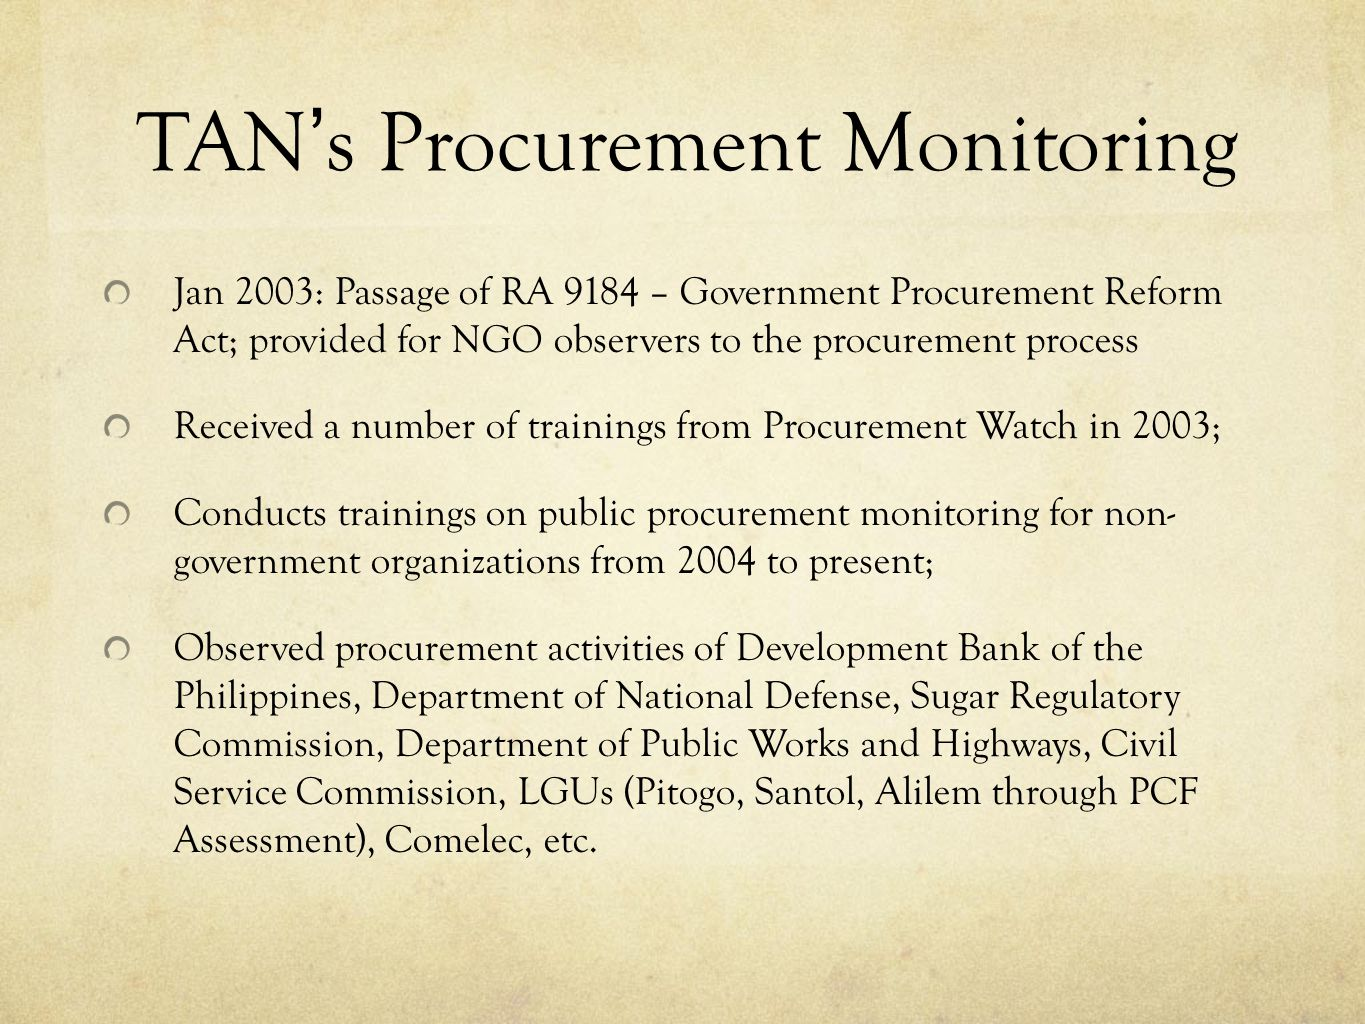 TANs Procurement Monitoring Jan 2003: Passage of RA 9184 – Government Procurement Reform Act; provided for NGO observers to the procurement process Received a number of trainings from Procurement Watch in 2003; Conducts trainings on public procurement monitoring for non- government organizations from 2004 to present; Observed procurement activities of Development Bank of the Philippines, Department of National Defense, Sugar Regulatory Commission, Department of Public Works and Highways, Civil Service Commission, LGUs (Pitogo, Santol, Alilem through PCF Assessment), Comelec, etc.